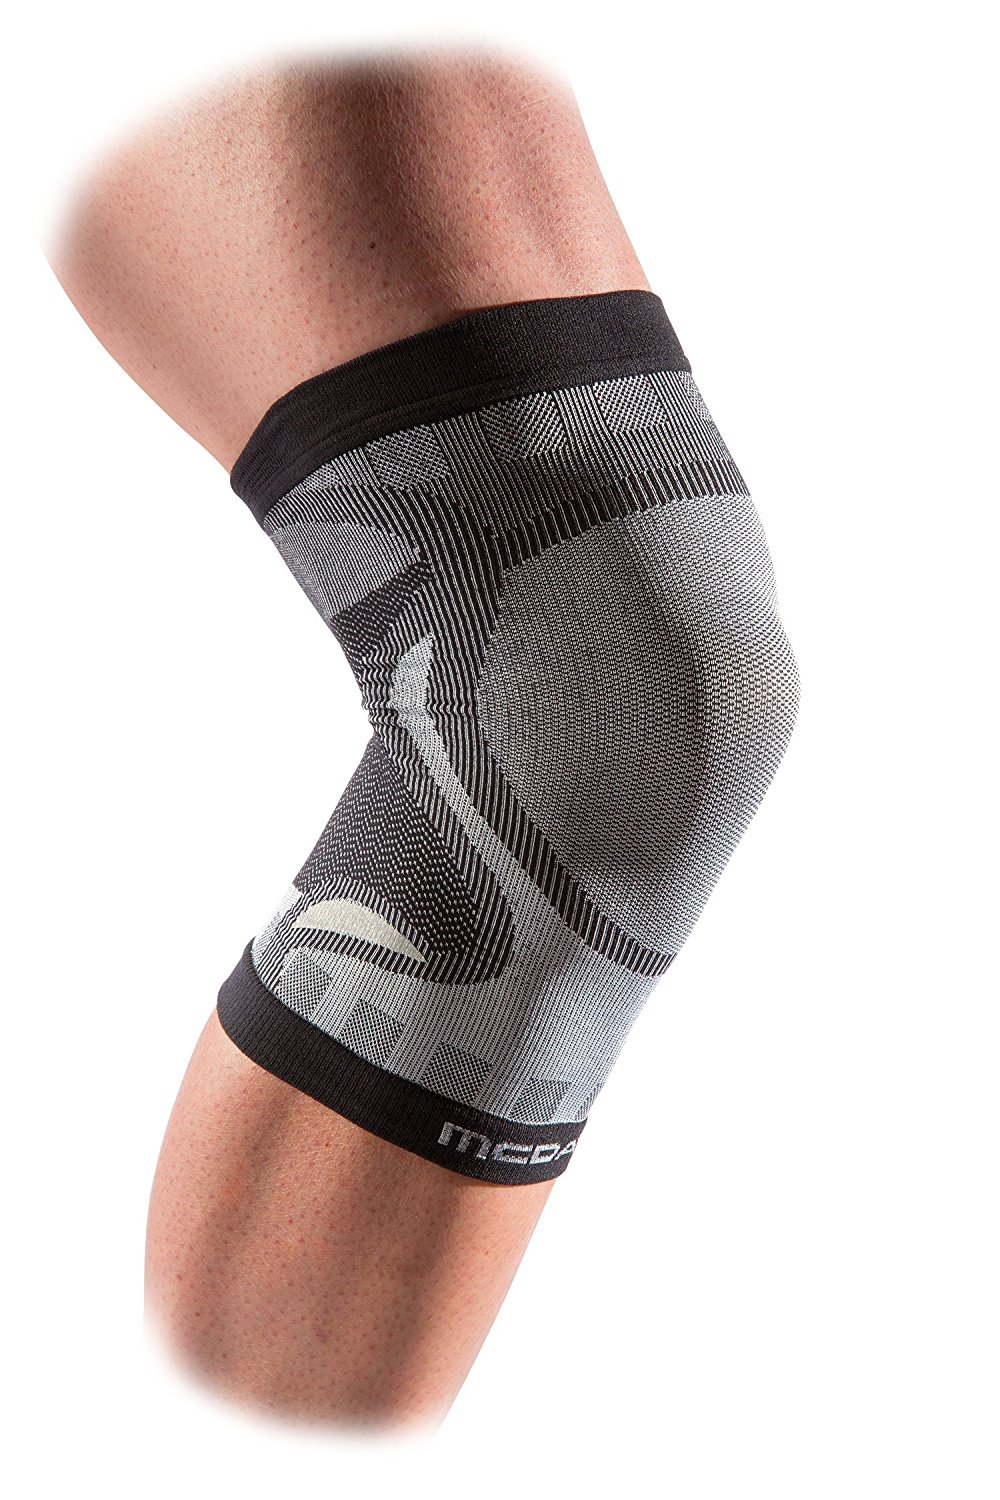 2e285c2705 Get Quotations · McDavid Freelastic Seamless Knit Compression Knee Sleeve  for Knee Support and Relief From Runner's Knee and